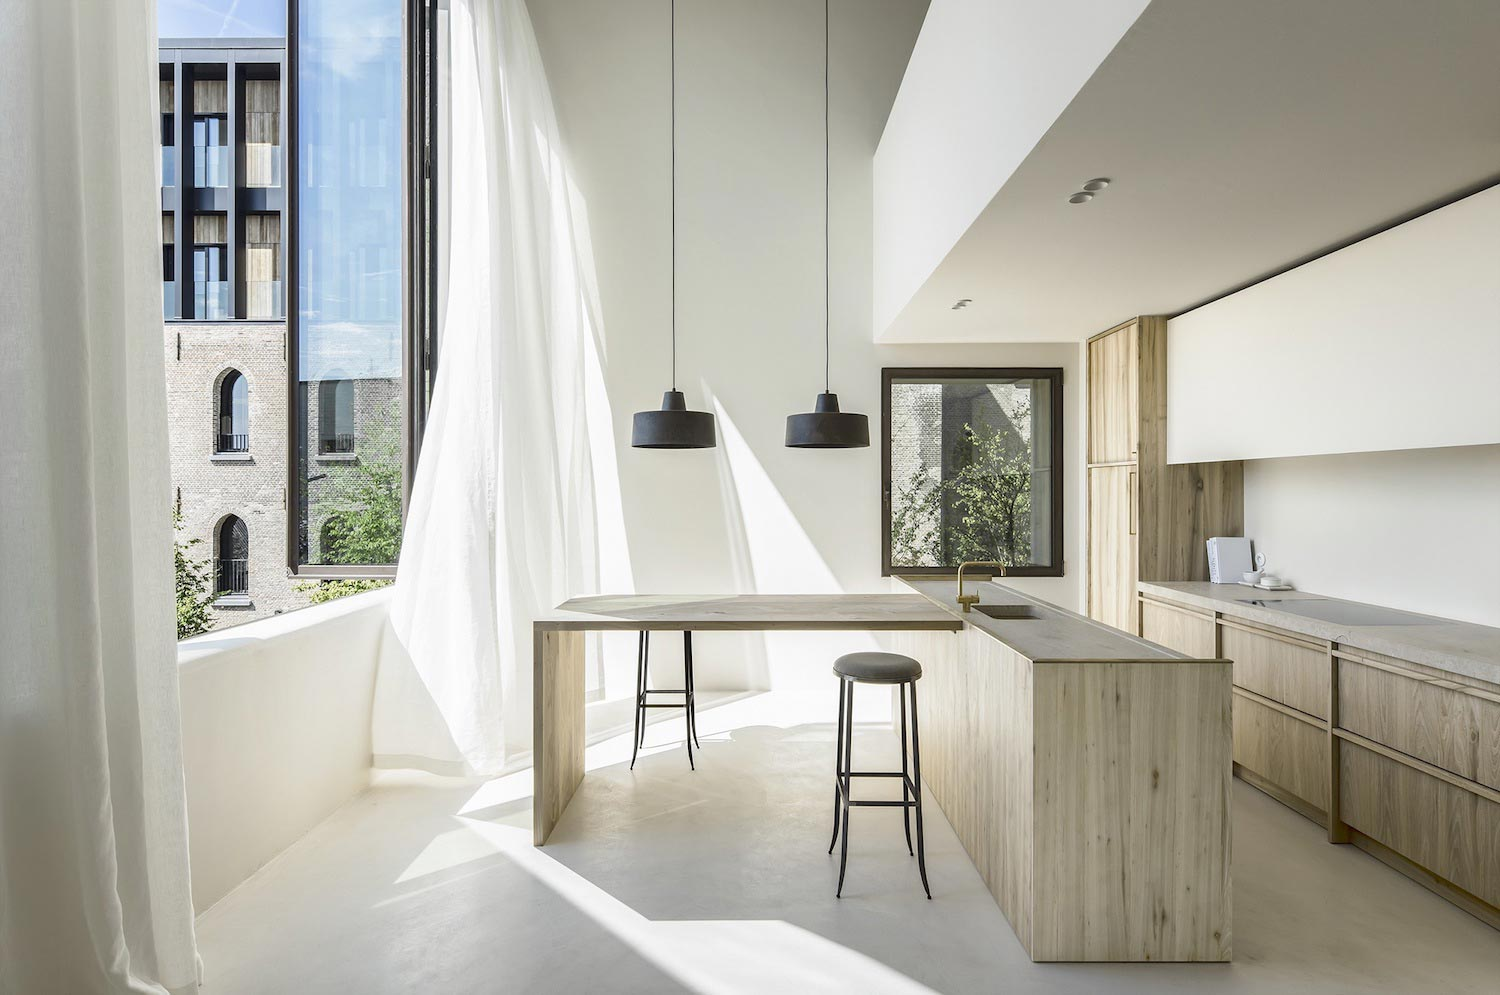 Minimalist interior design of the Cube Apartment designed by Arjaan De Feyter  CAANdesign